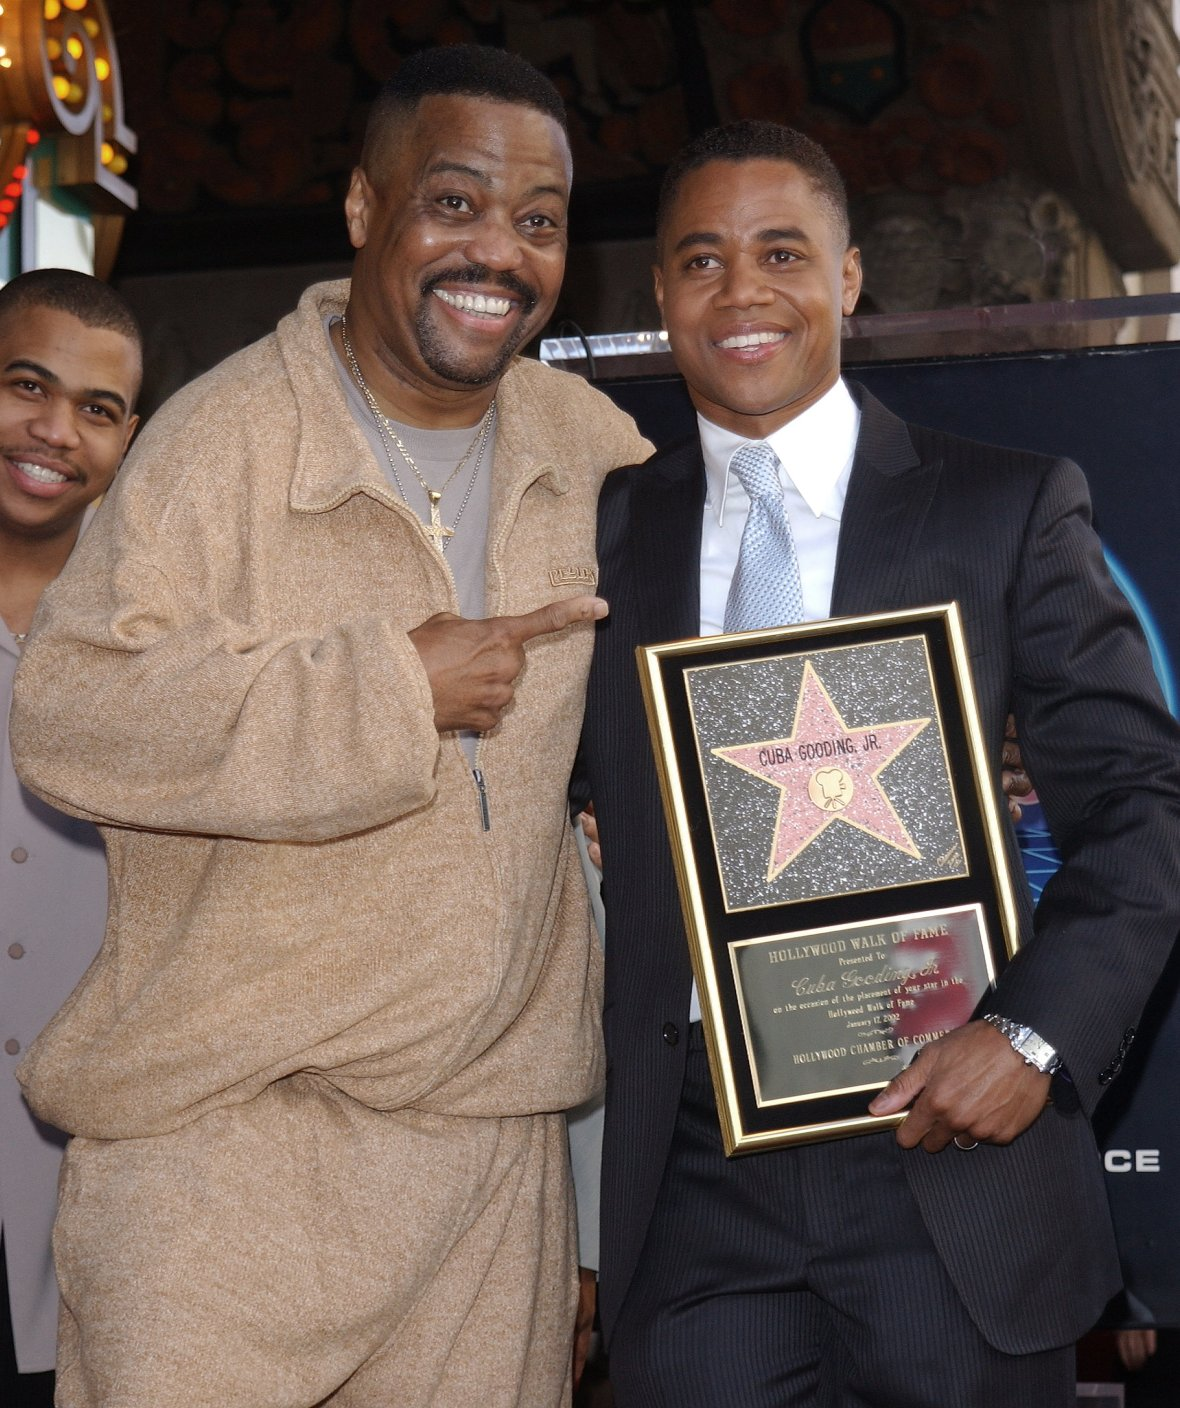 cuba gooding sr. getty images